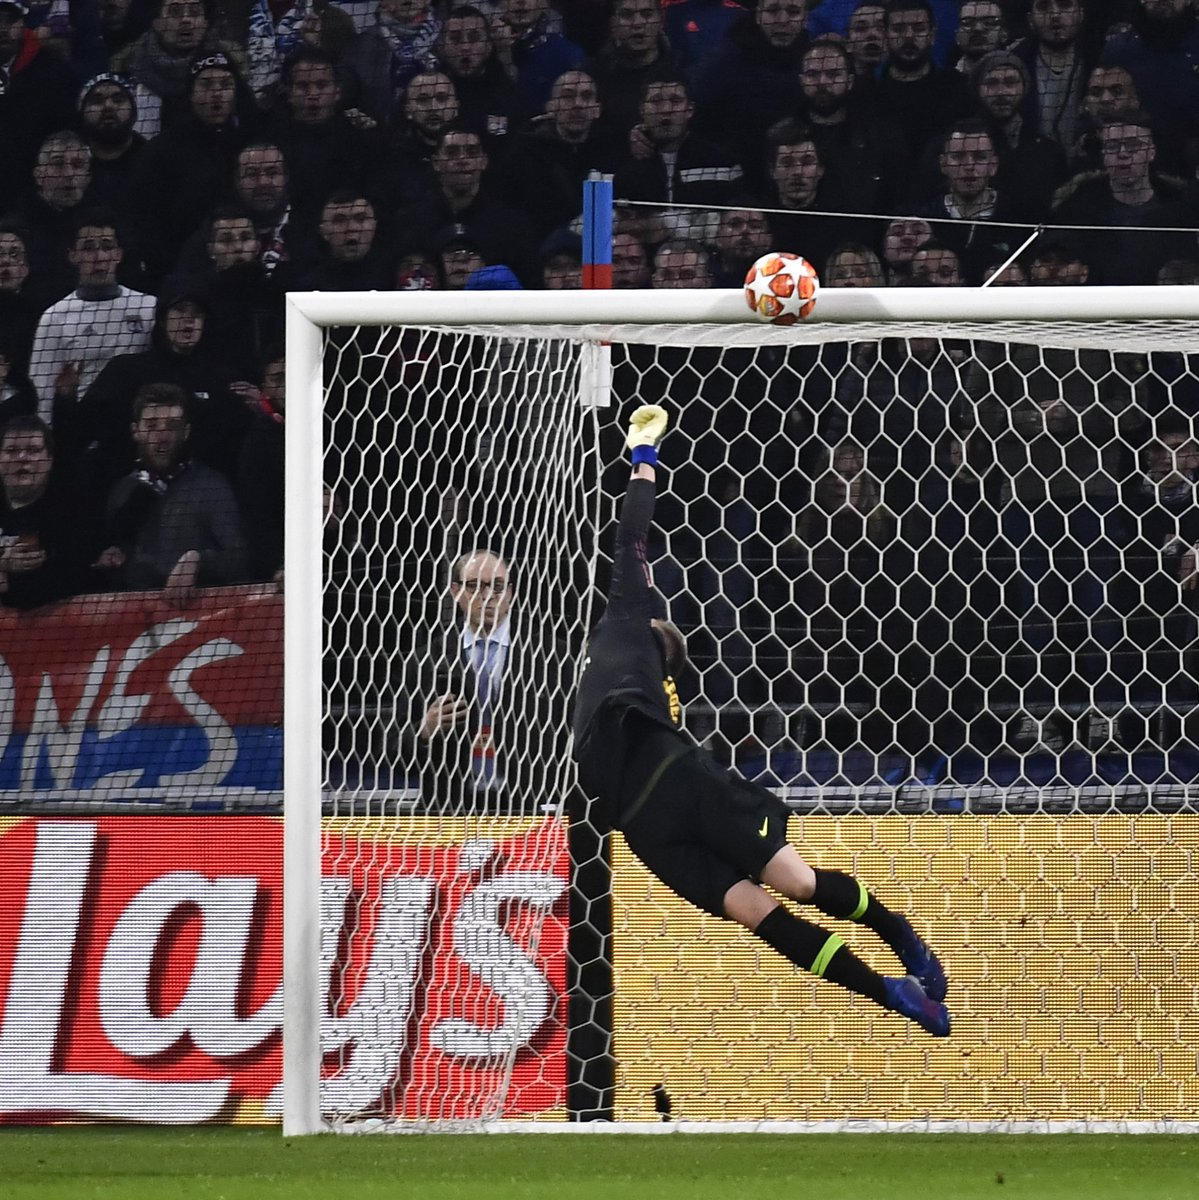 😱😱😱 What. A. Save!!!  Marc-André ter Stegen 👏👏👏  #UCL